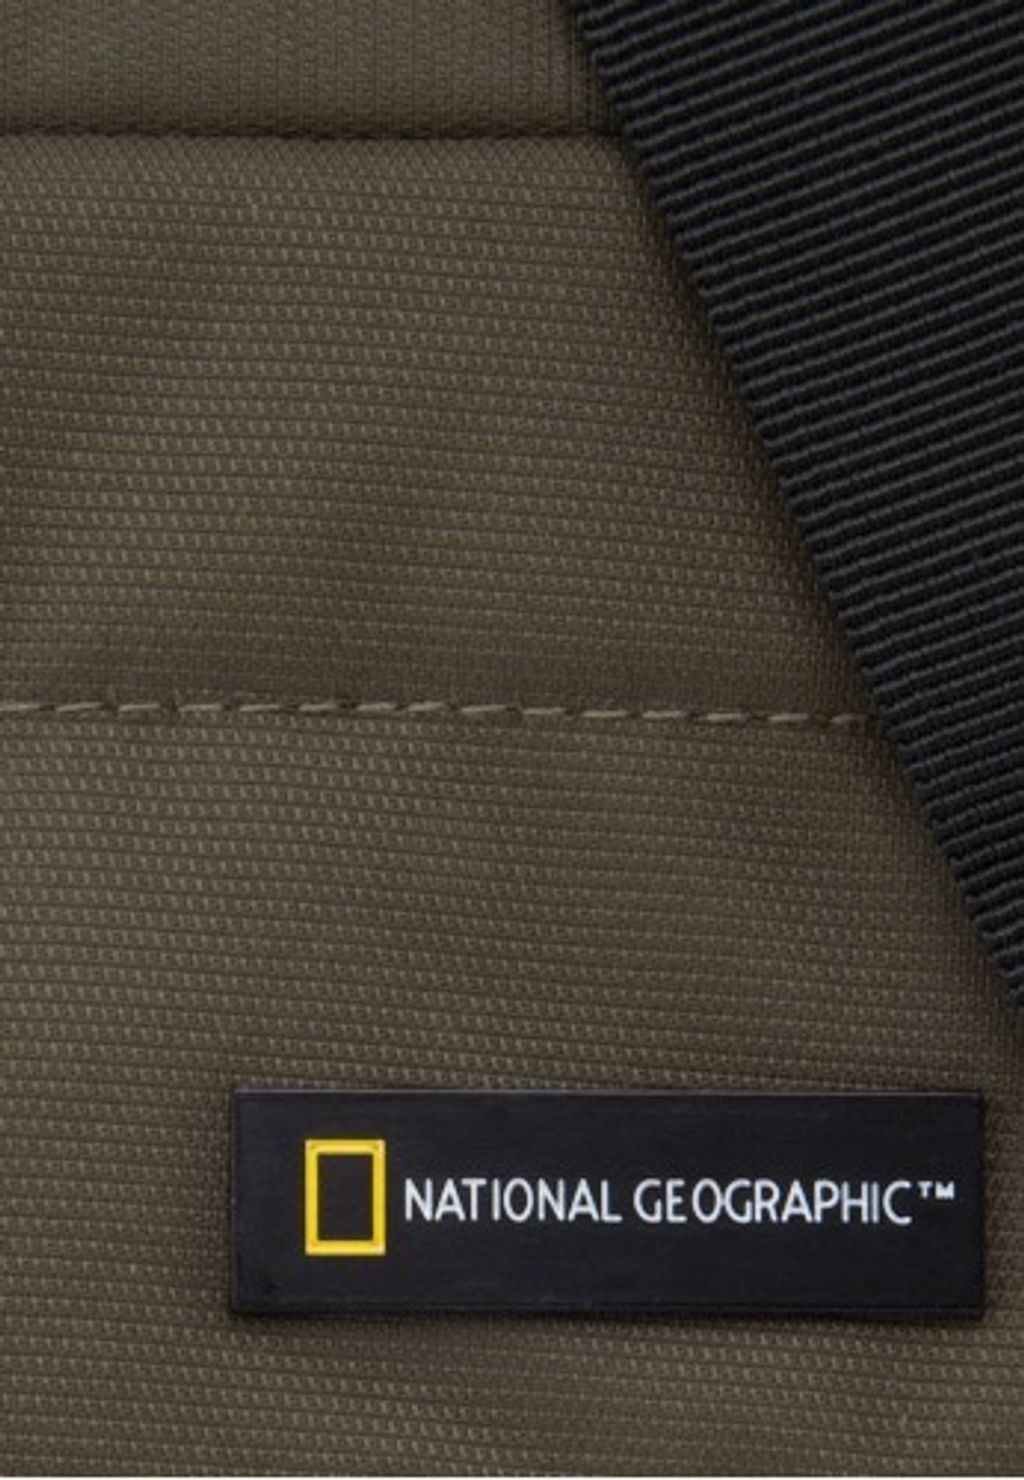 national-geographic-7150-915452-5-product.jpg